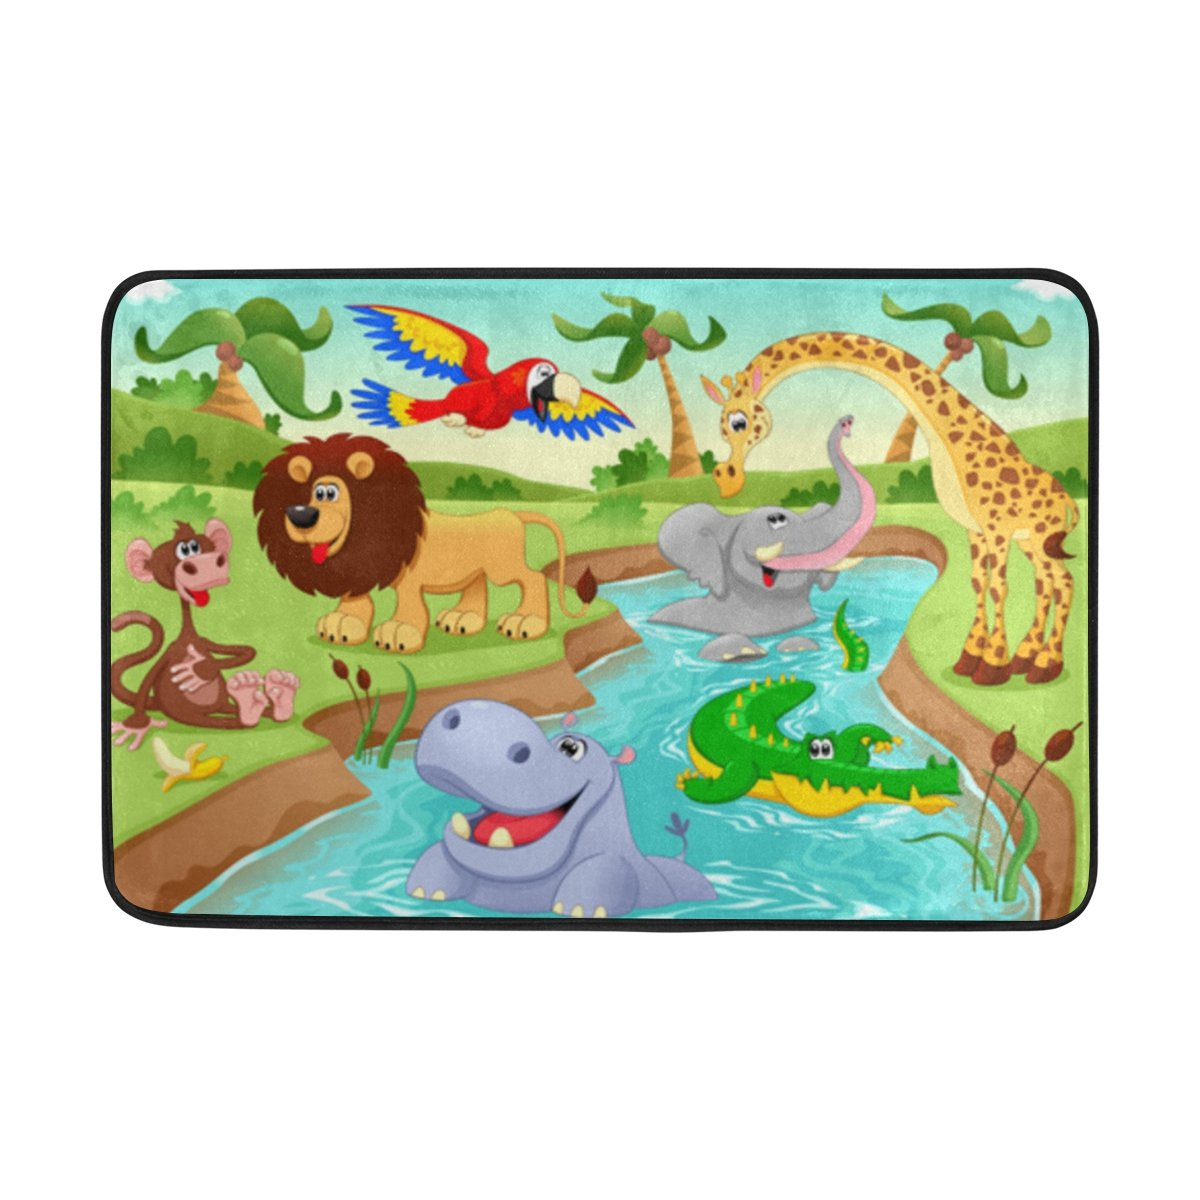 My Little Nest Cartoon African Jungle Animals Kids Playroom Floor Mat Non Slip Soft Bedroom Door Mat Classroom Rug Carpet 23.6''x 15.7''